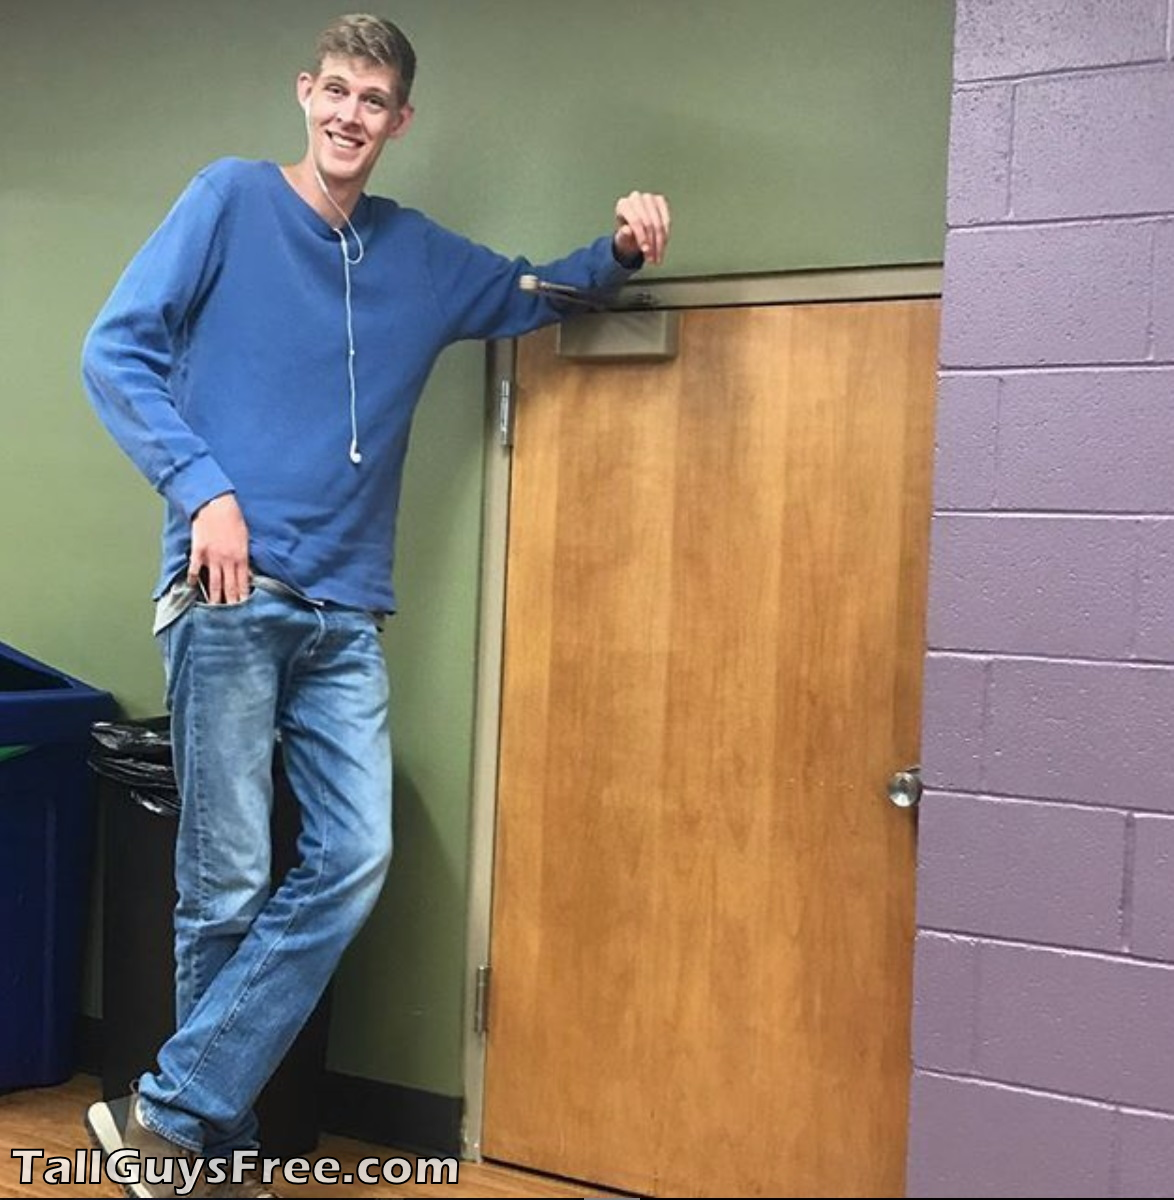 Giant lanky man doorway